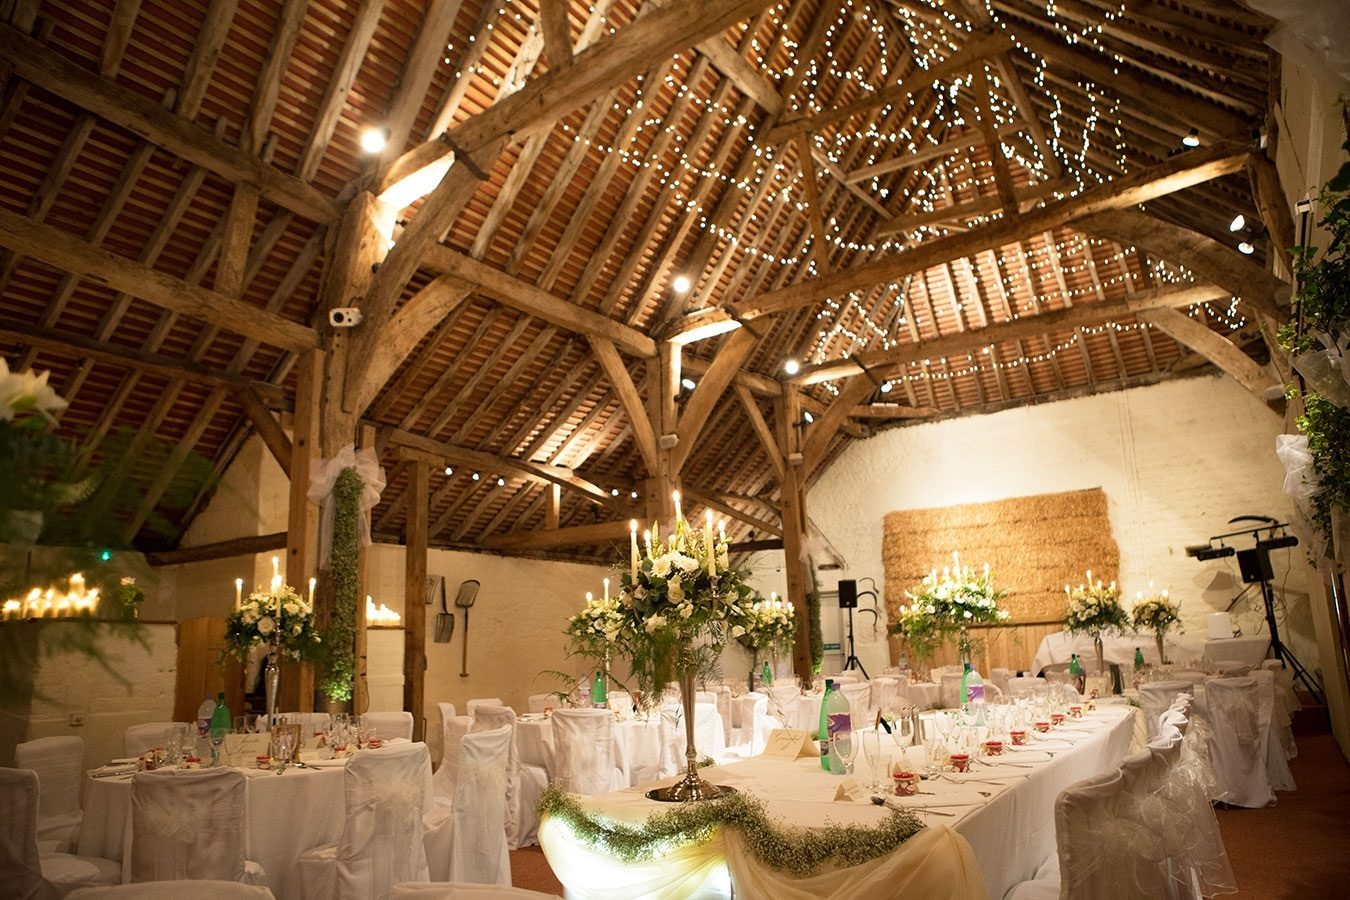 The barn at Pangdean set up for an elegant wedding breakfast